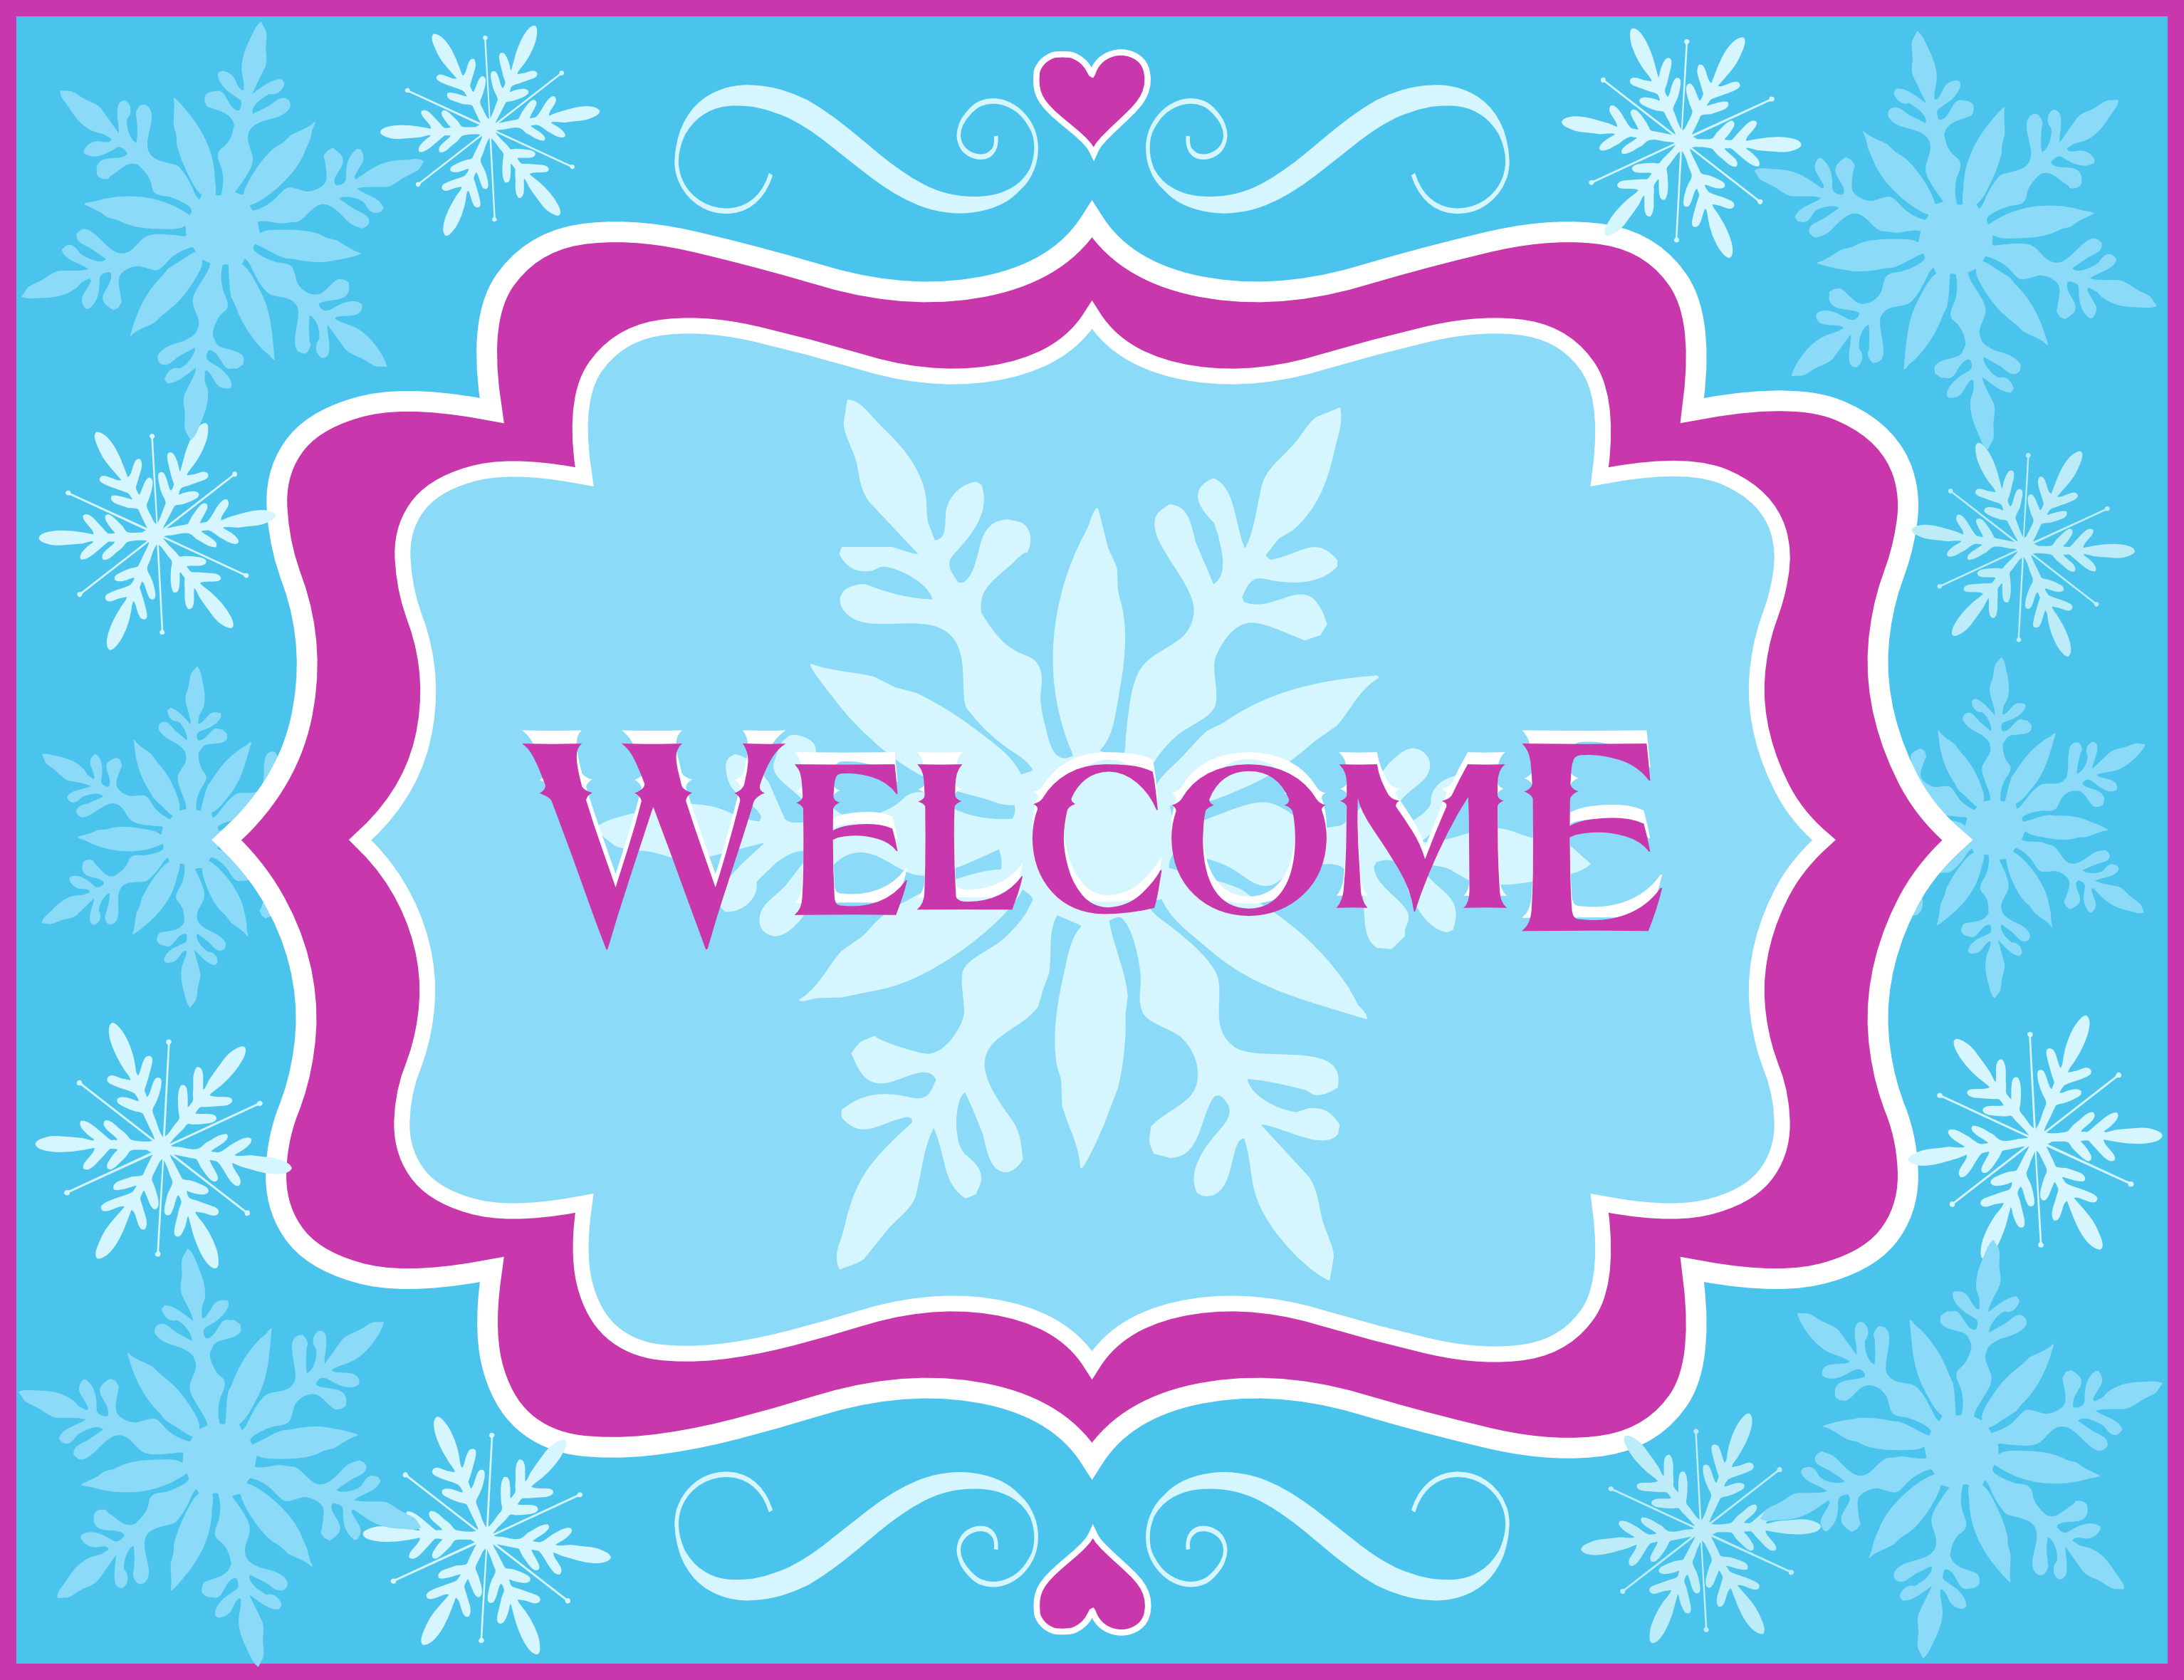 Free Frozen Party Printables From Printabelle | Catch My Party - Free Printable Welcome Cards